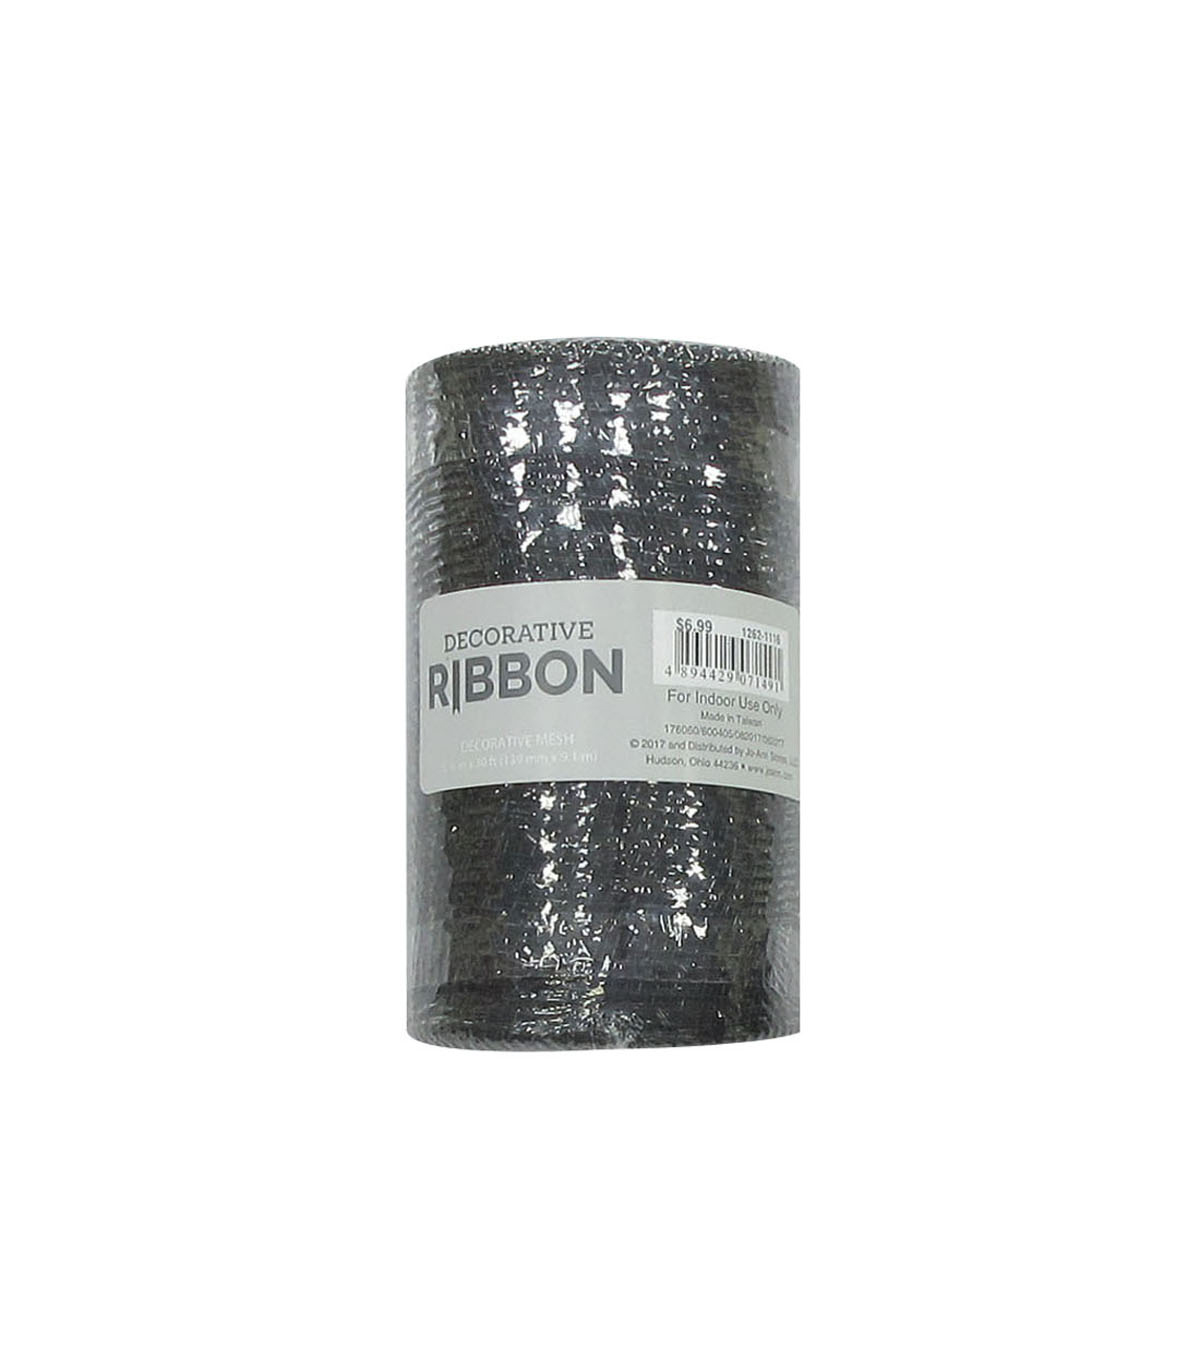 Decorative Ribbon Metallic Deco Mesh 5.5\u0027\u0027x10 yds-Black